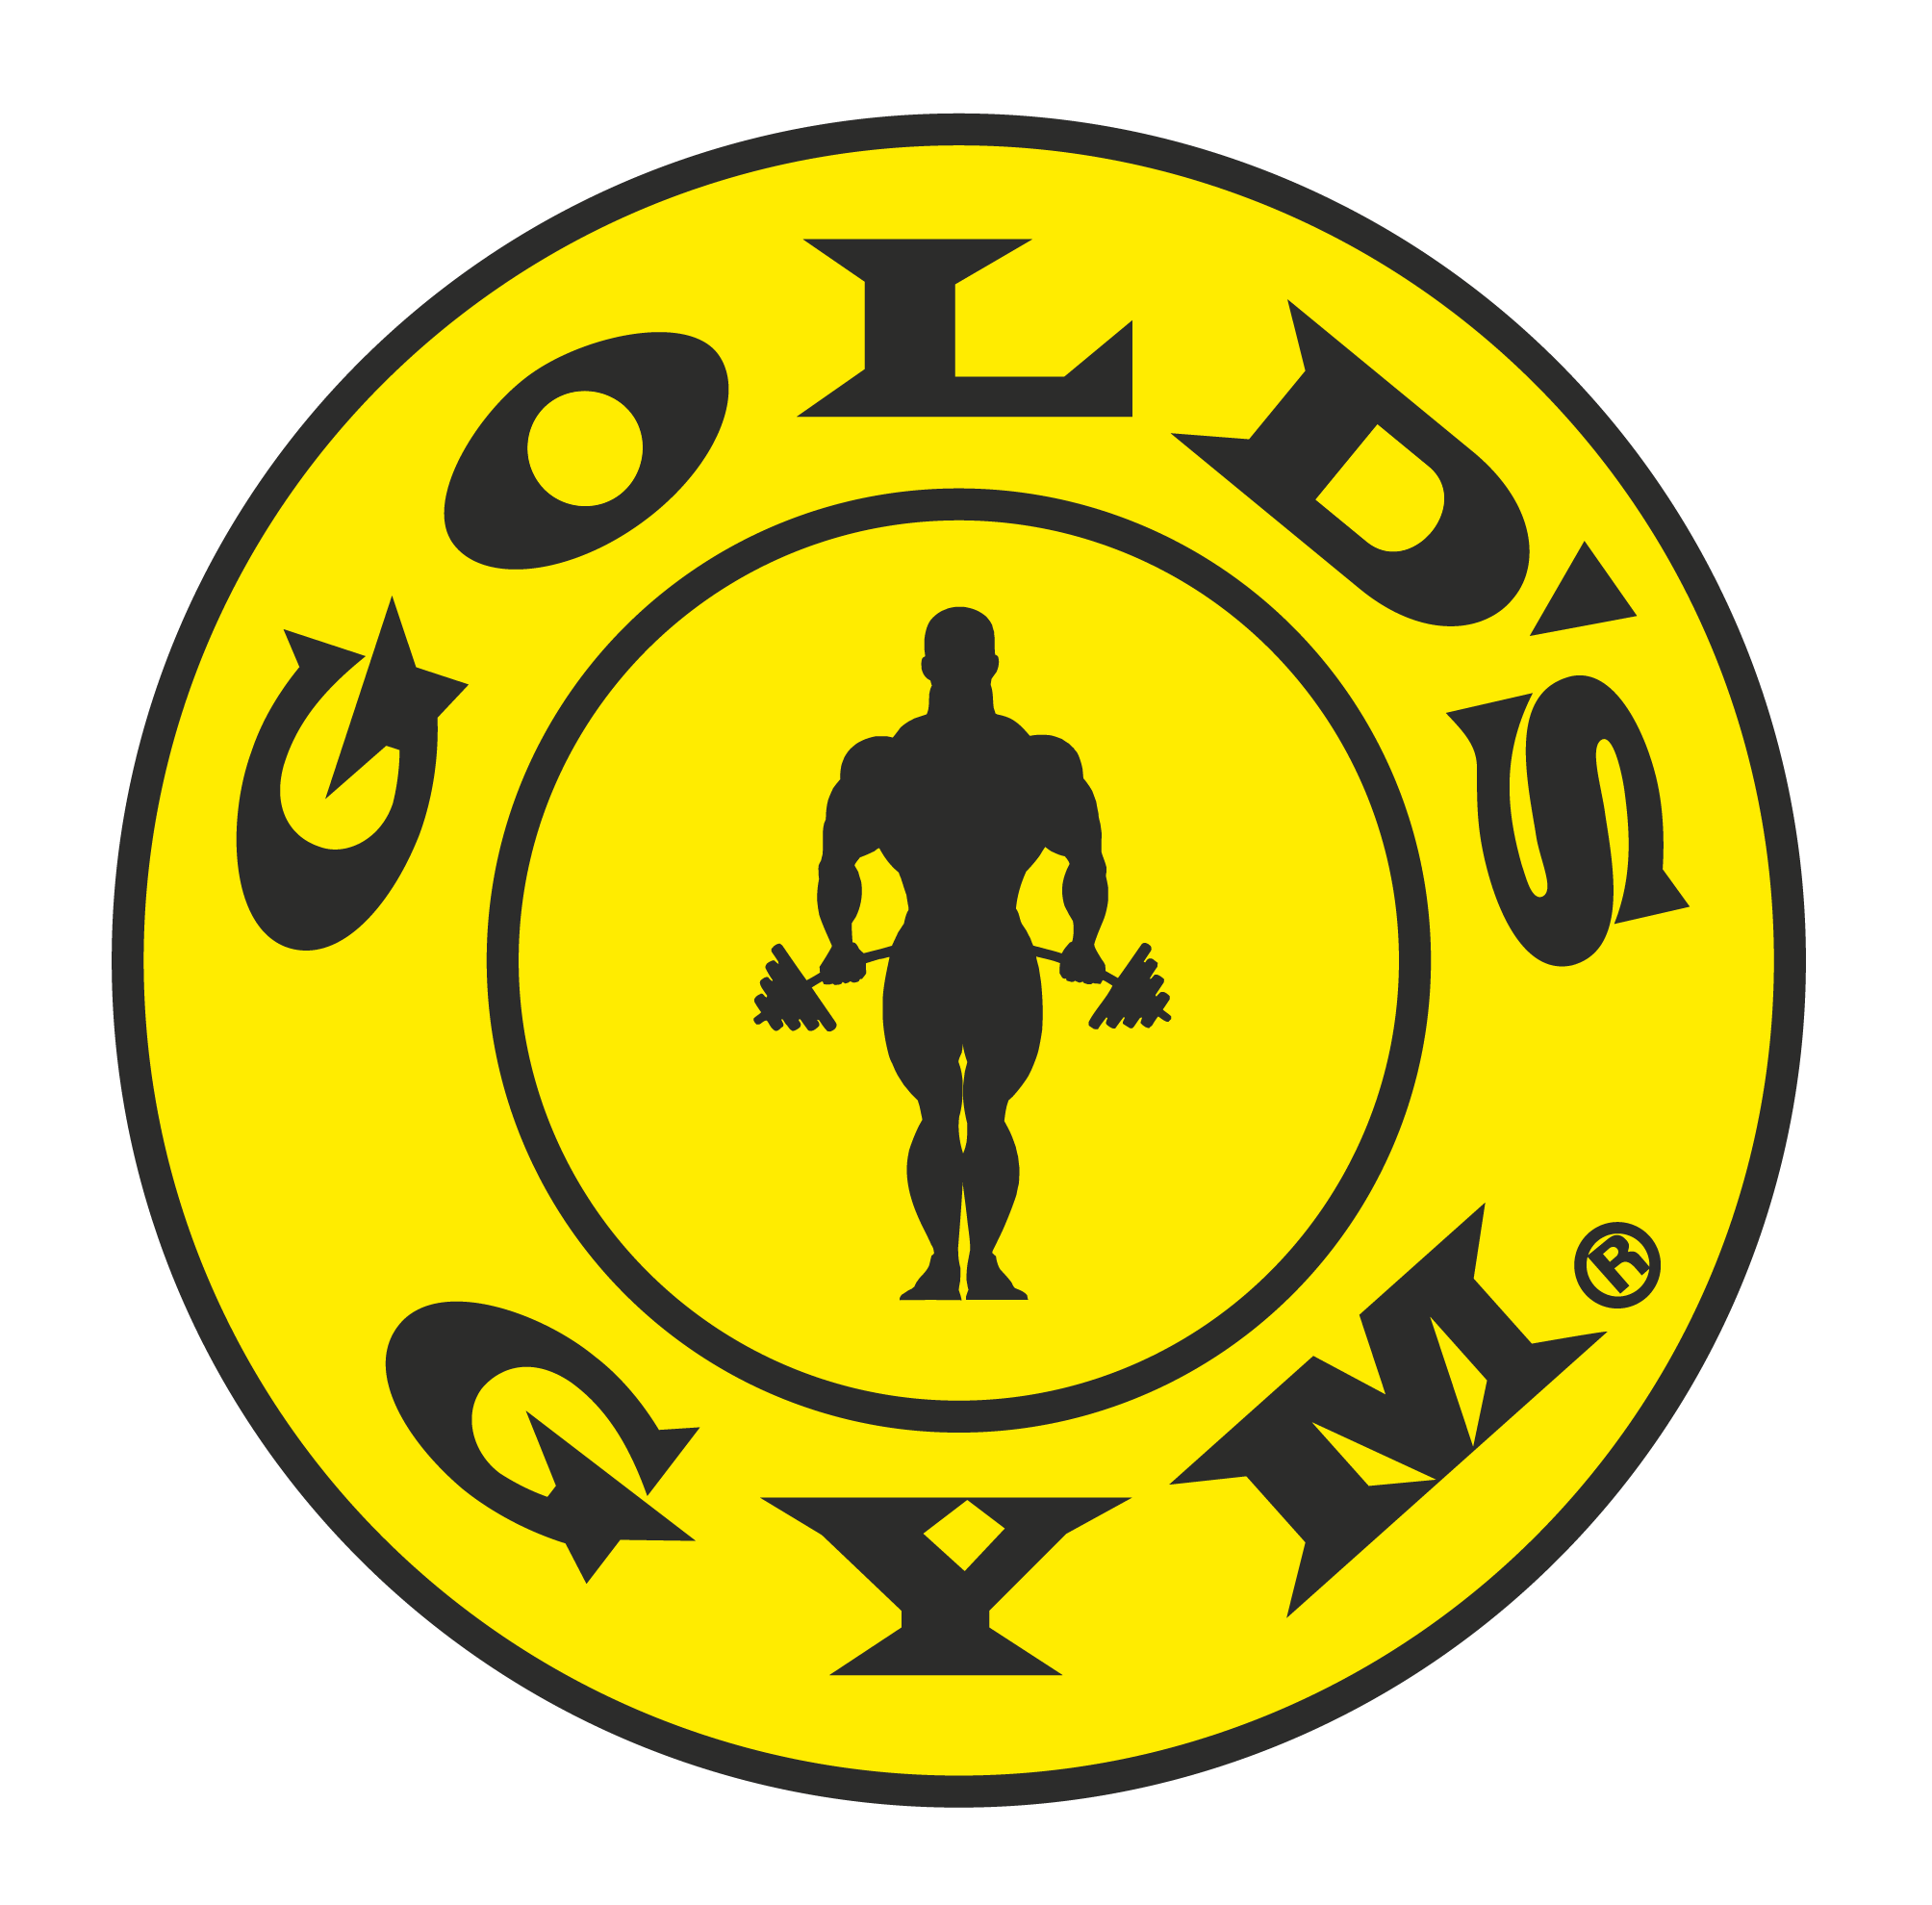 join golds gym logo - HD2008×1980